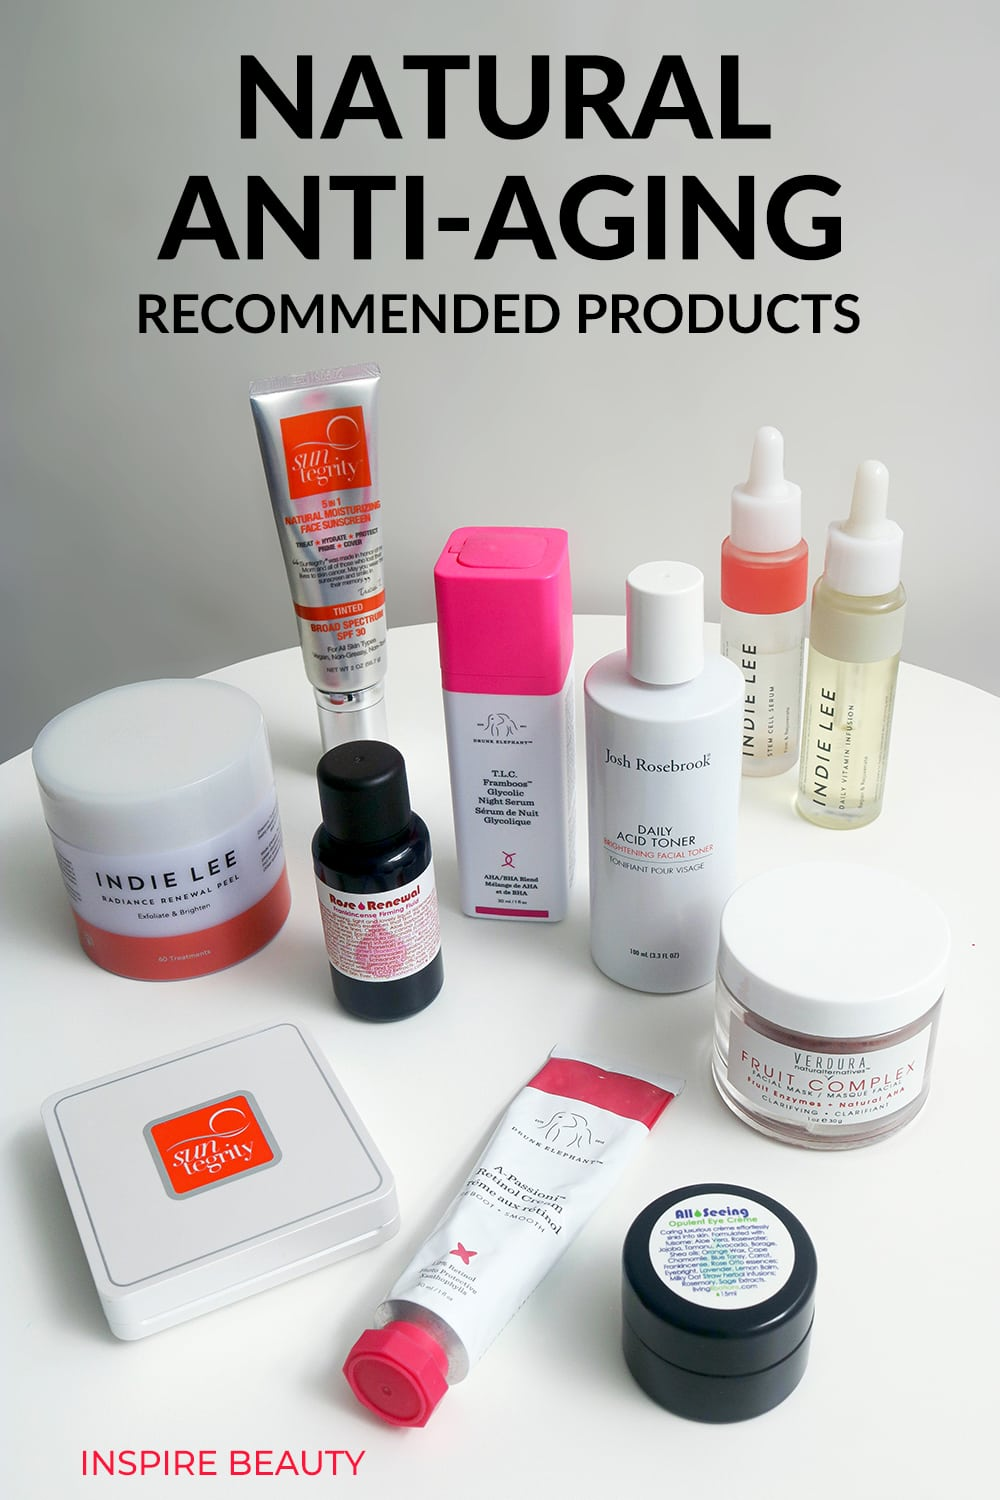 Recommended skin care products for natural anti-aging in your 40s